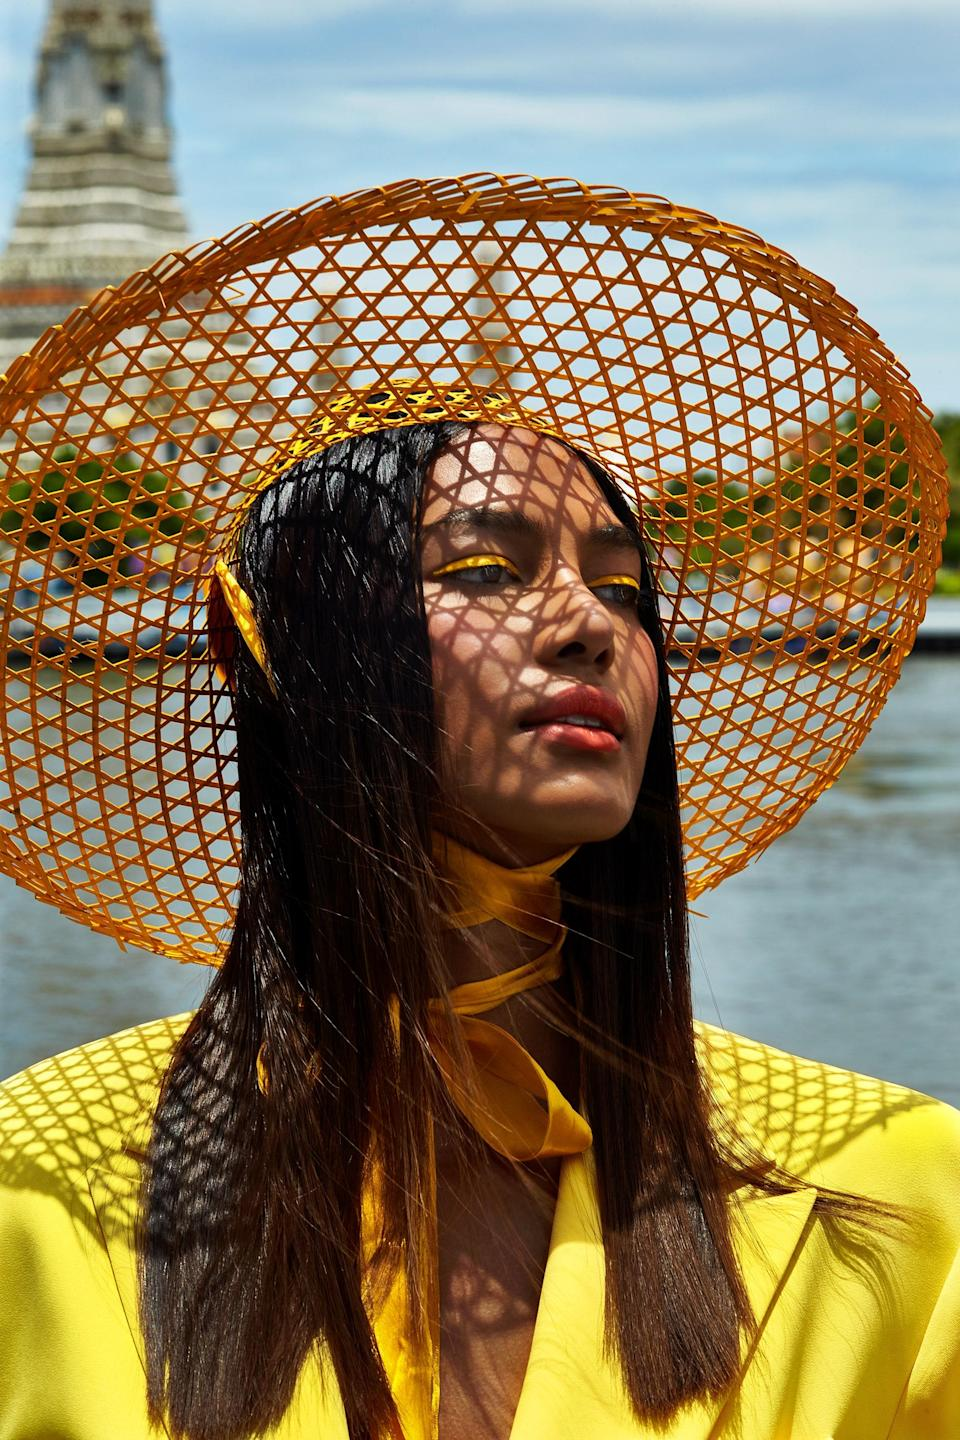 """""""I was rejected at castings a lot, not only for my skin tone, but because I am trans. Many trans models tell me that my winning [The Face Thailand] has opened doors for them, but it has been very tough,"""" says Candy Kulchaya. Her yellow liner was """"inspired by the marigold flower that we use here for garlands,"""" says Barose. He used NYX Professional Makeup EpicWear Liner Stick in Cosmic Yellow, and then, to add more intensity, layered matching yellow powder eye shadow over it using a dampened liner brush. Irada top. Stylist's own hat."""